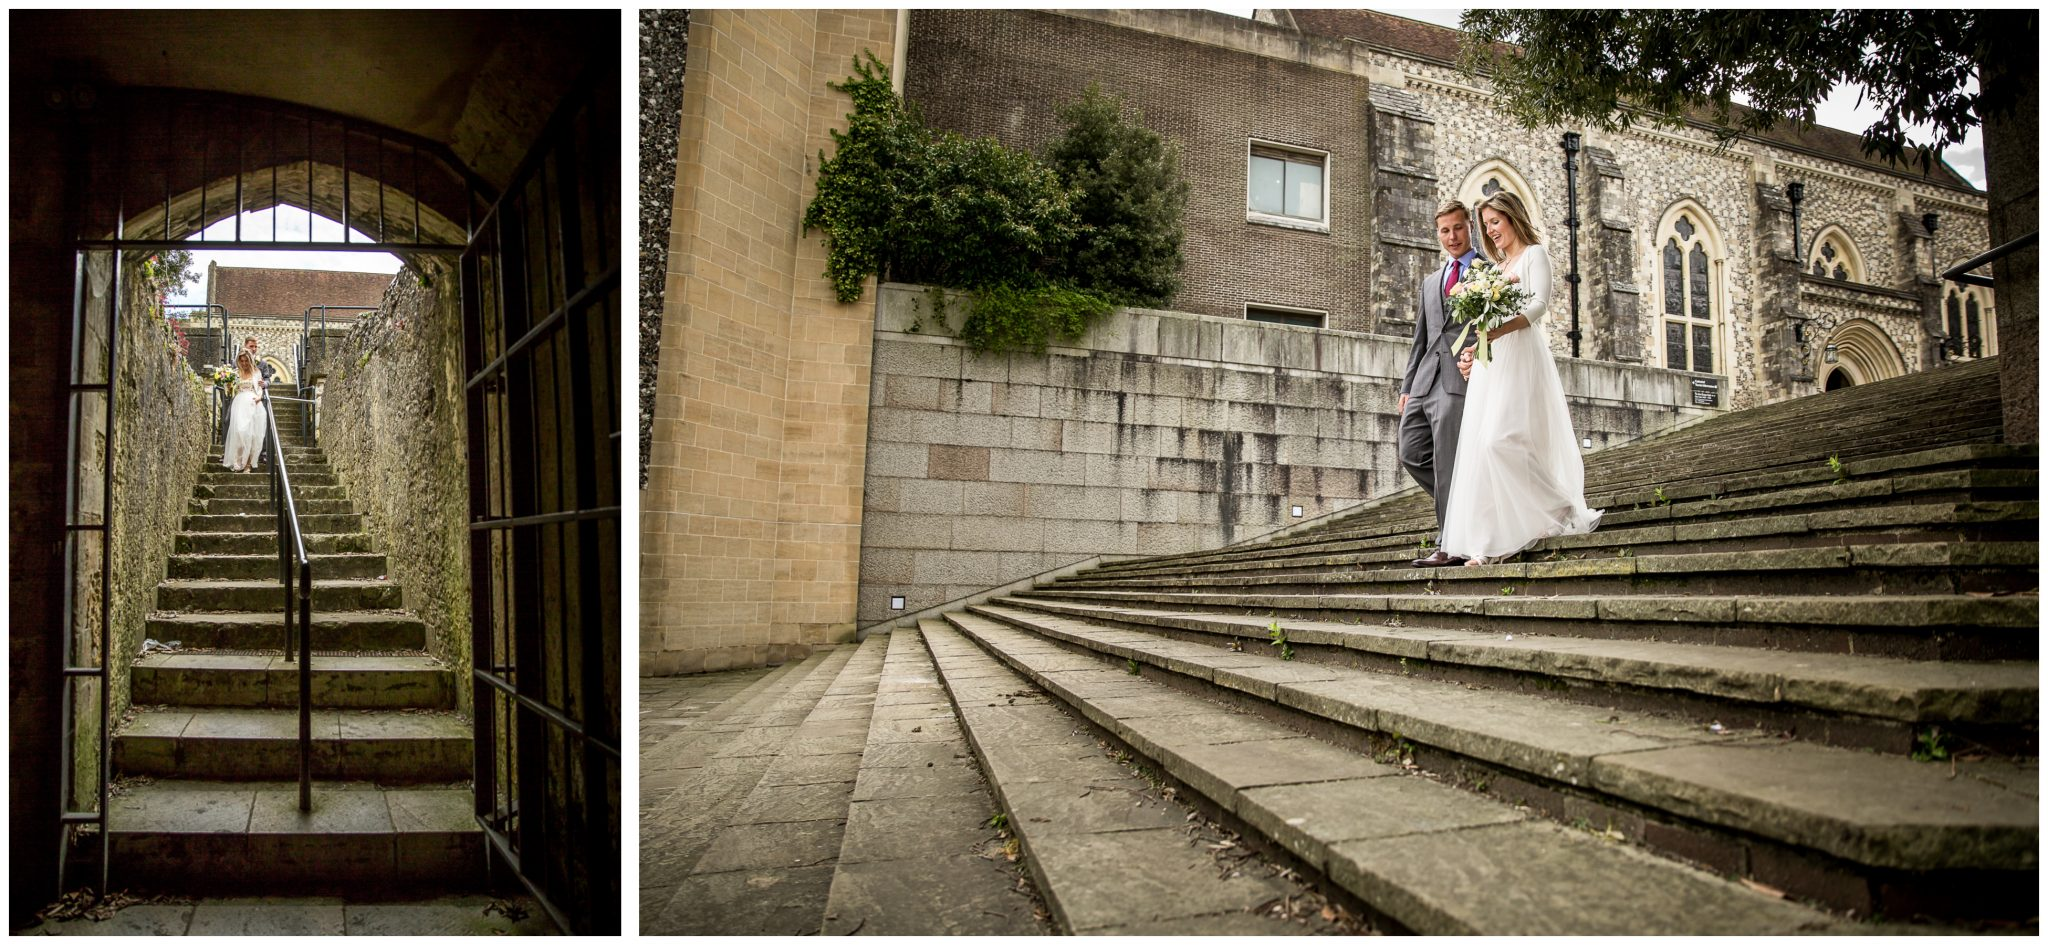 Bride and groom walking down steps near law courts